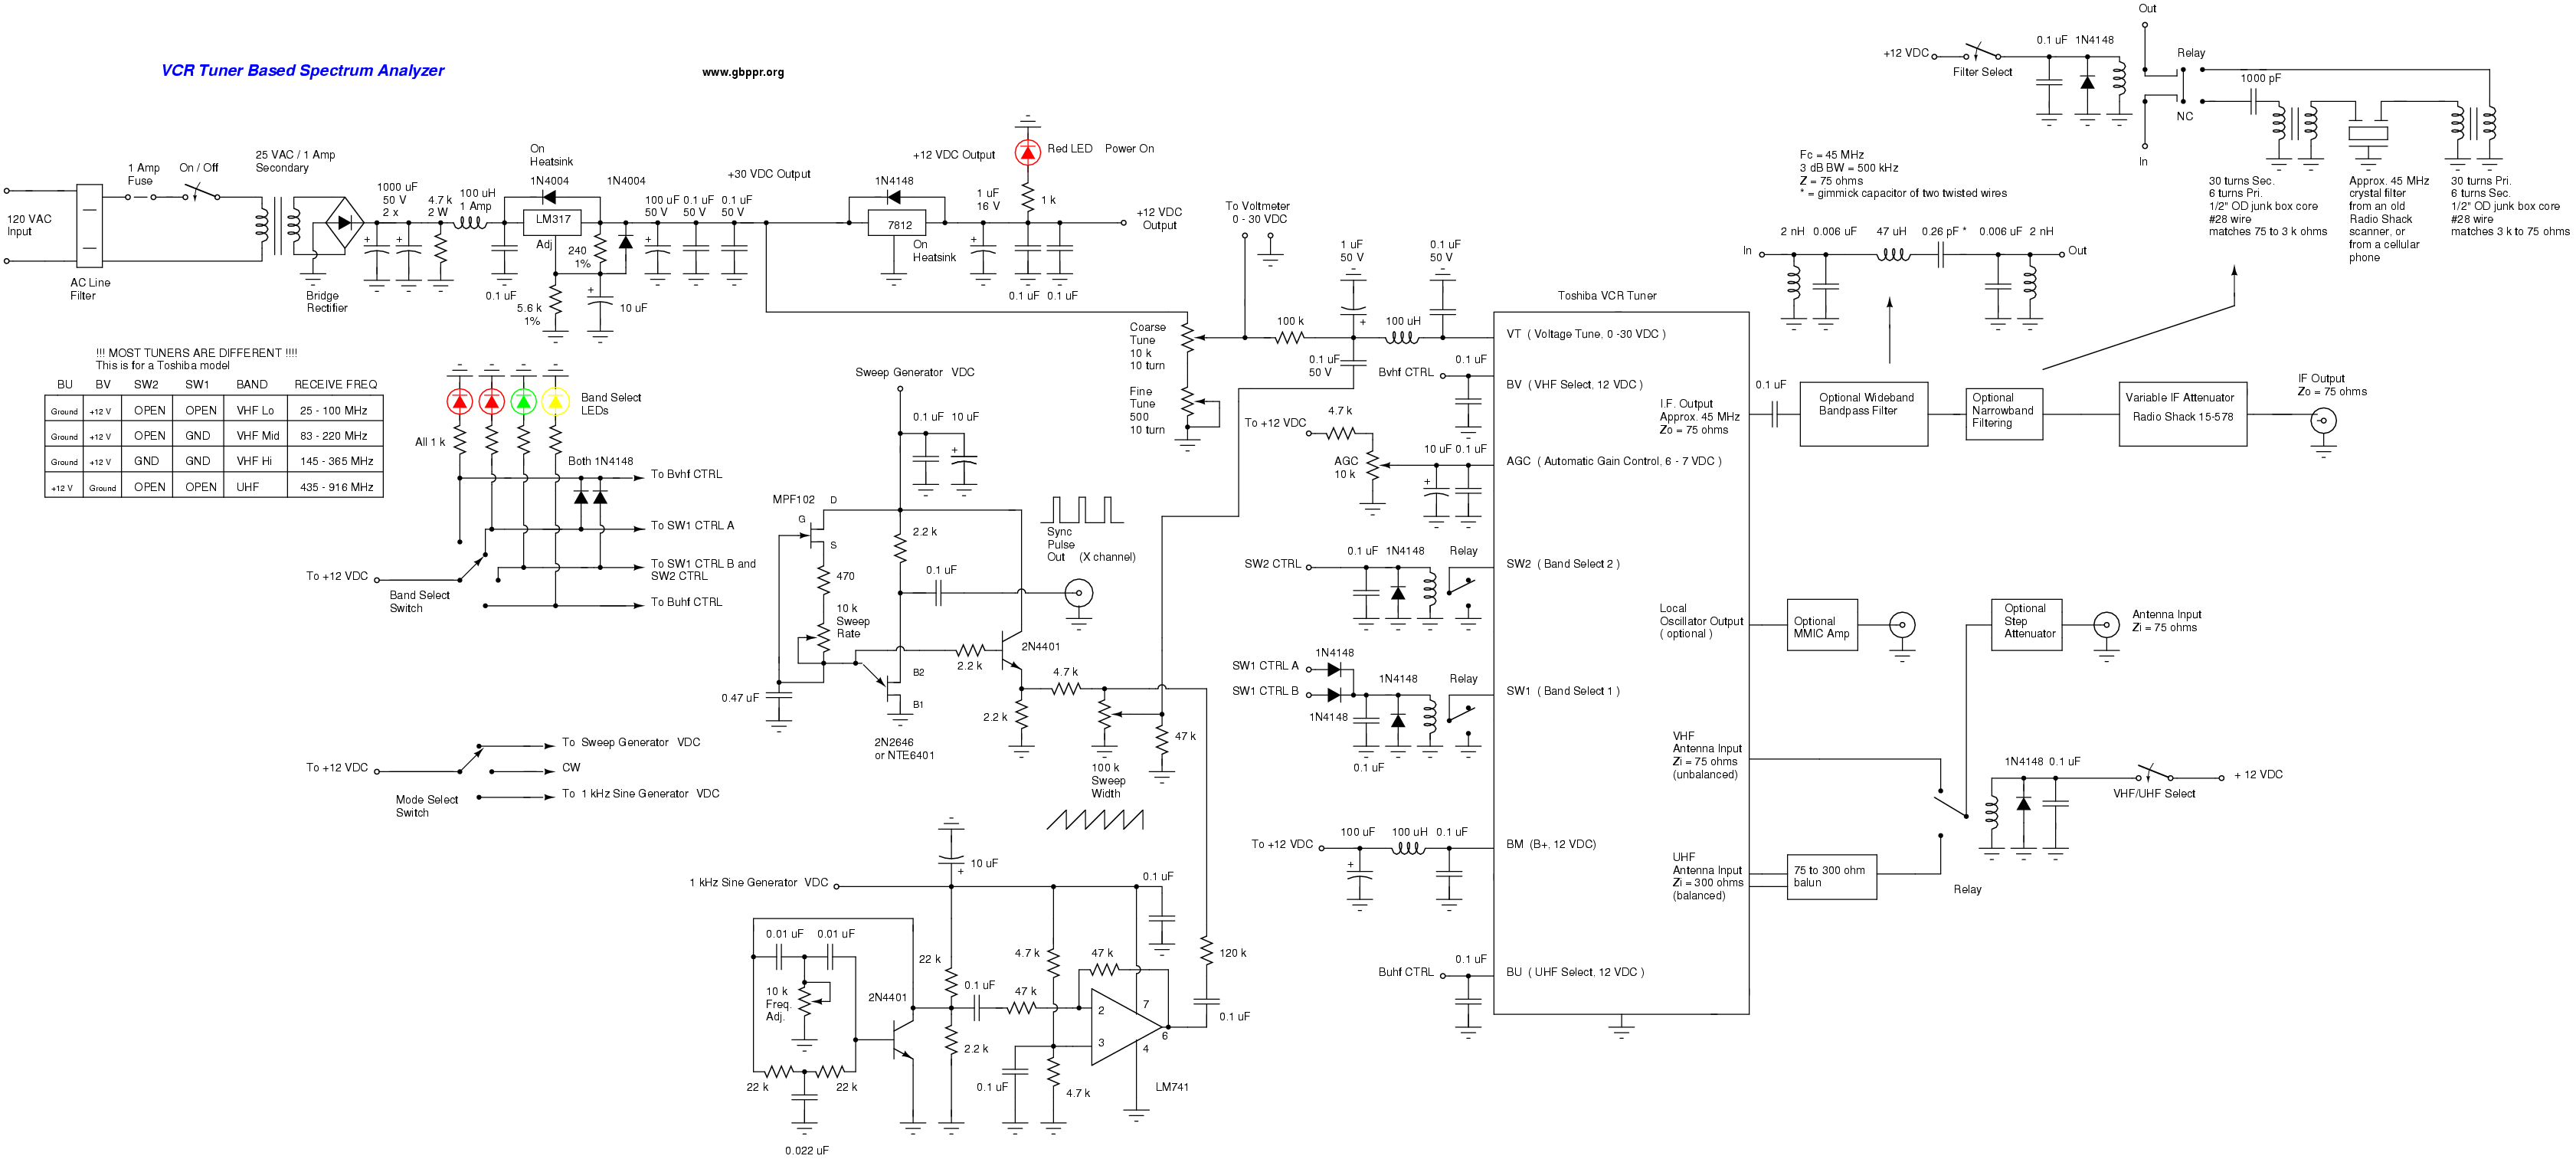 Test Equipment Circuit Diagrams And Electronic Projects How To Build Connection Tester Vcr Tuner Based Rf Spectrum Analyzer Schematic